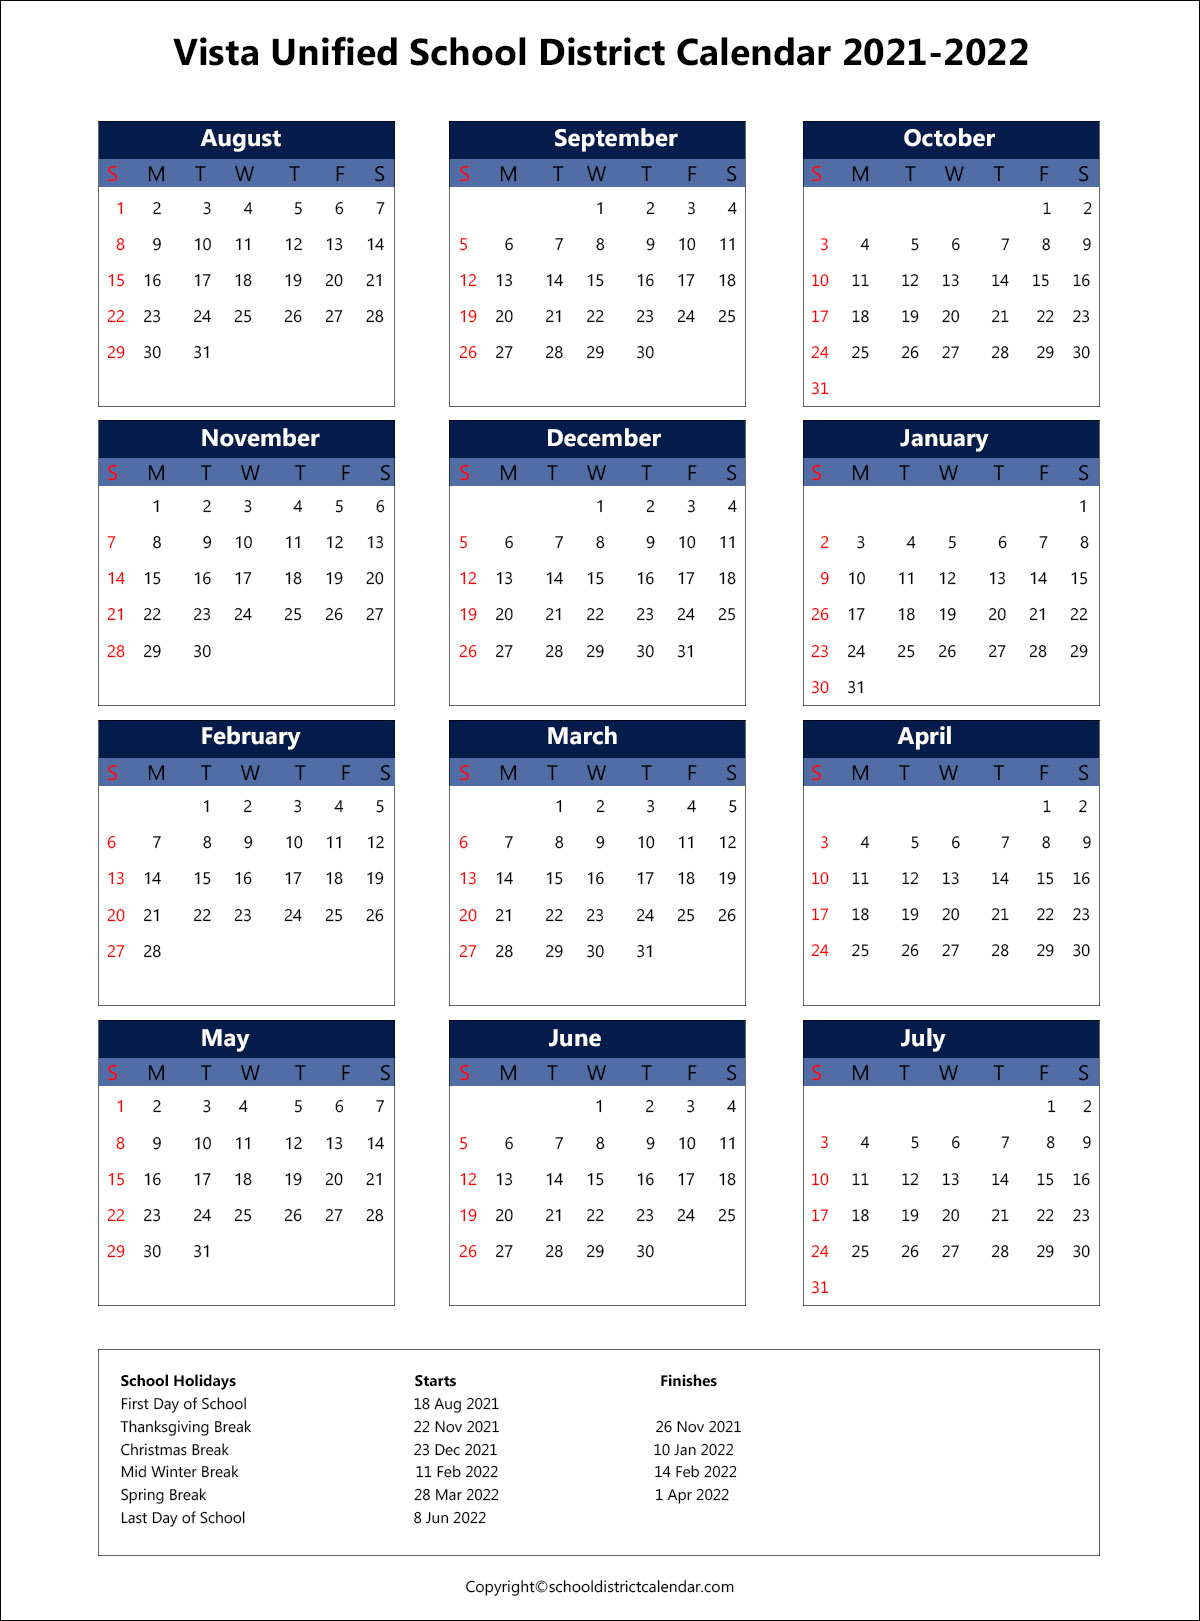 Vista Unified School District Calendar 2021